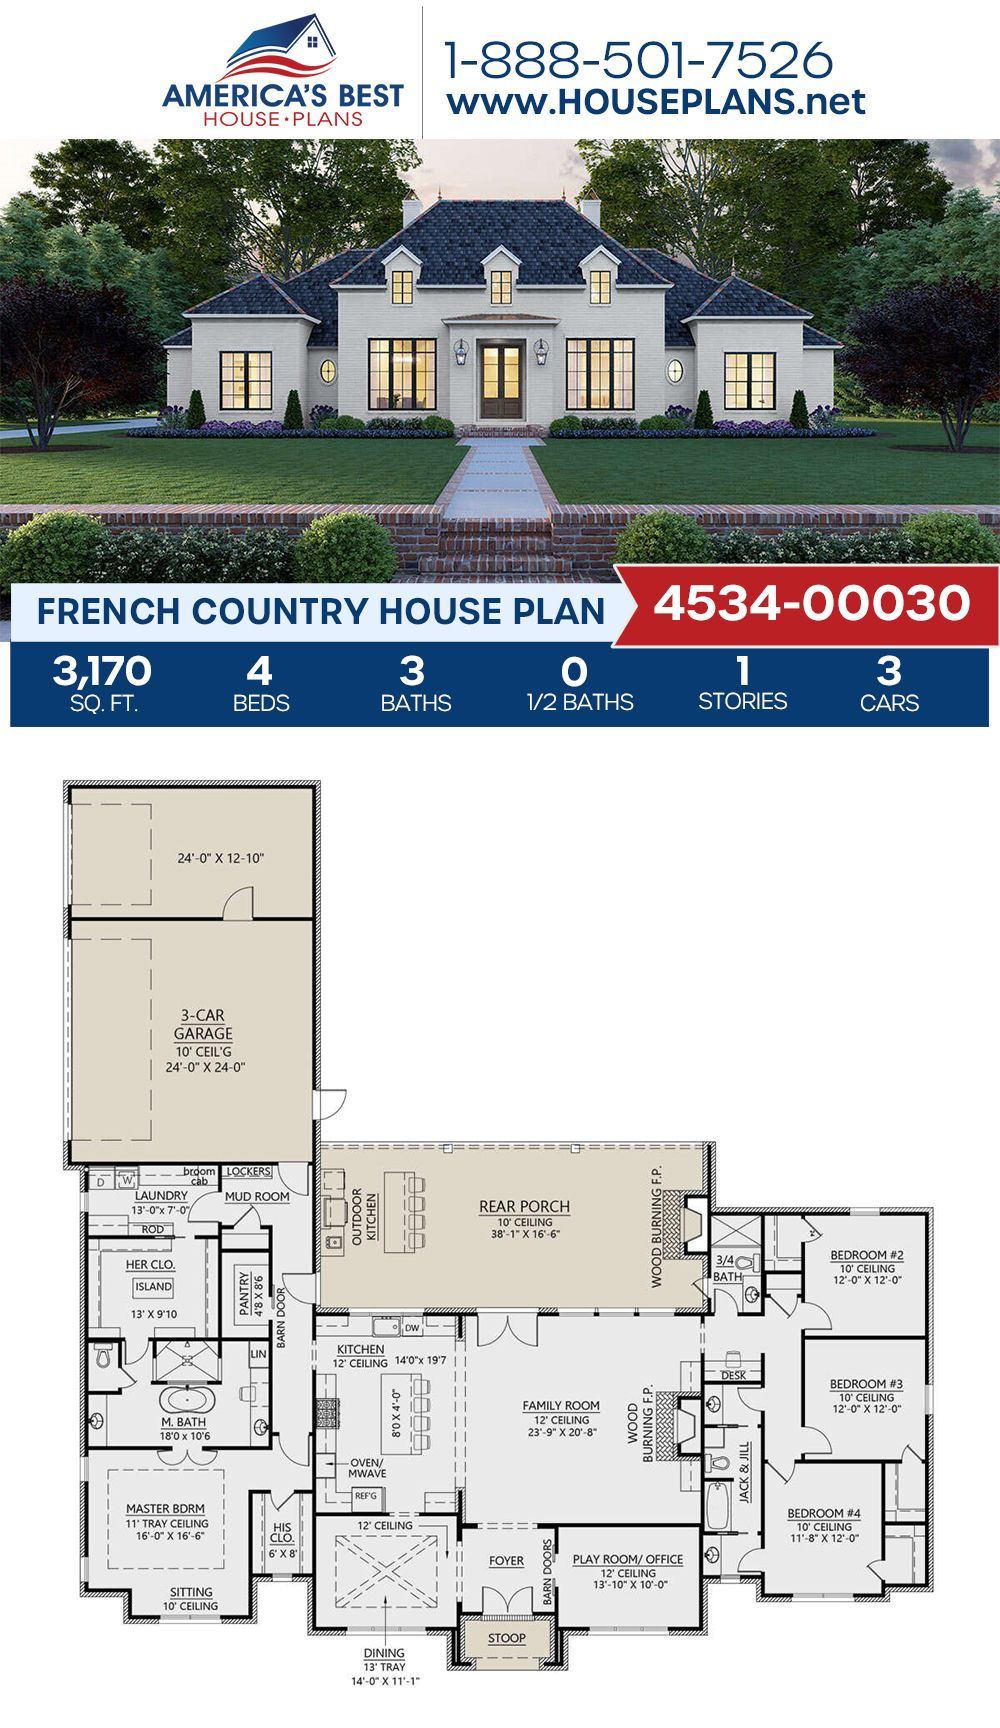 House Plan 4534 00030 French Country Plan 3 170 Square Feet 4 Bedrooms 3 Bathrooms Affordable House Plans French Country House Plans Ranch House Plans